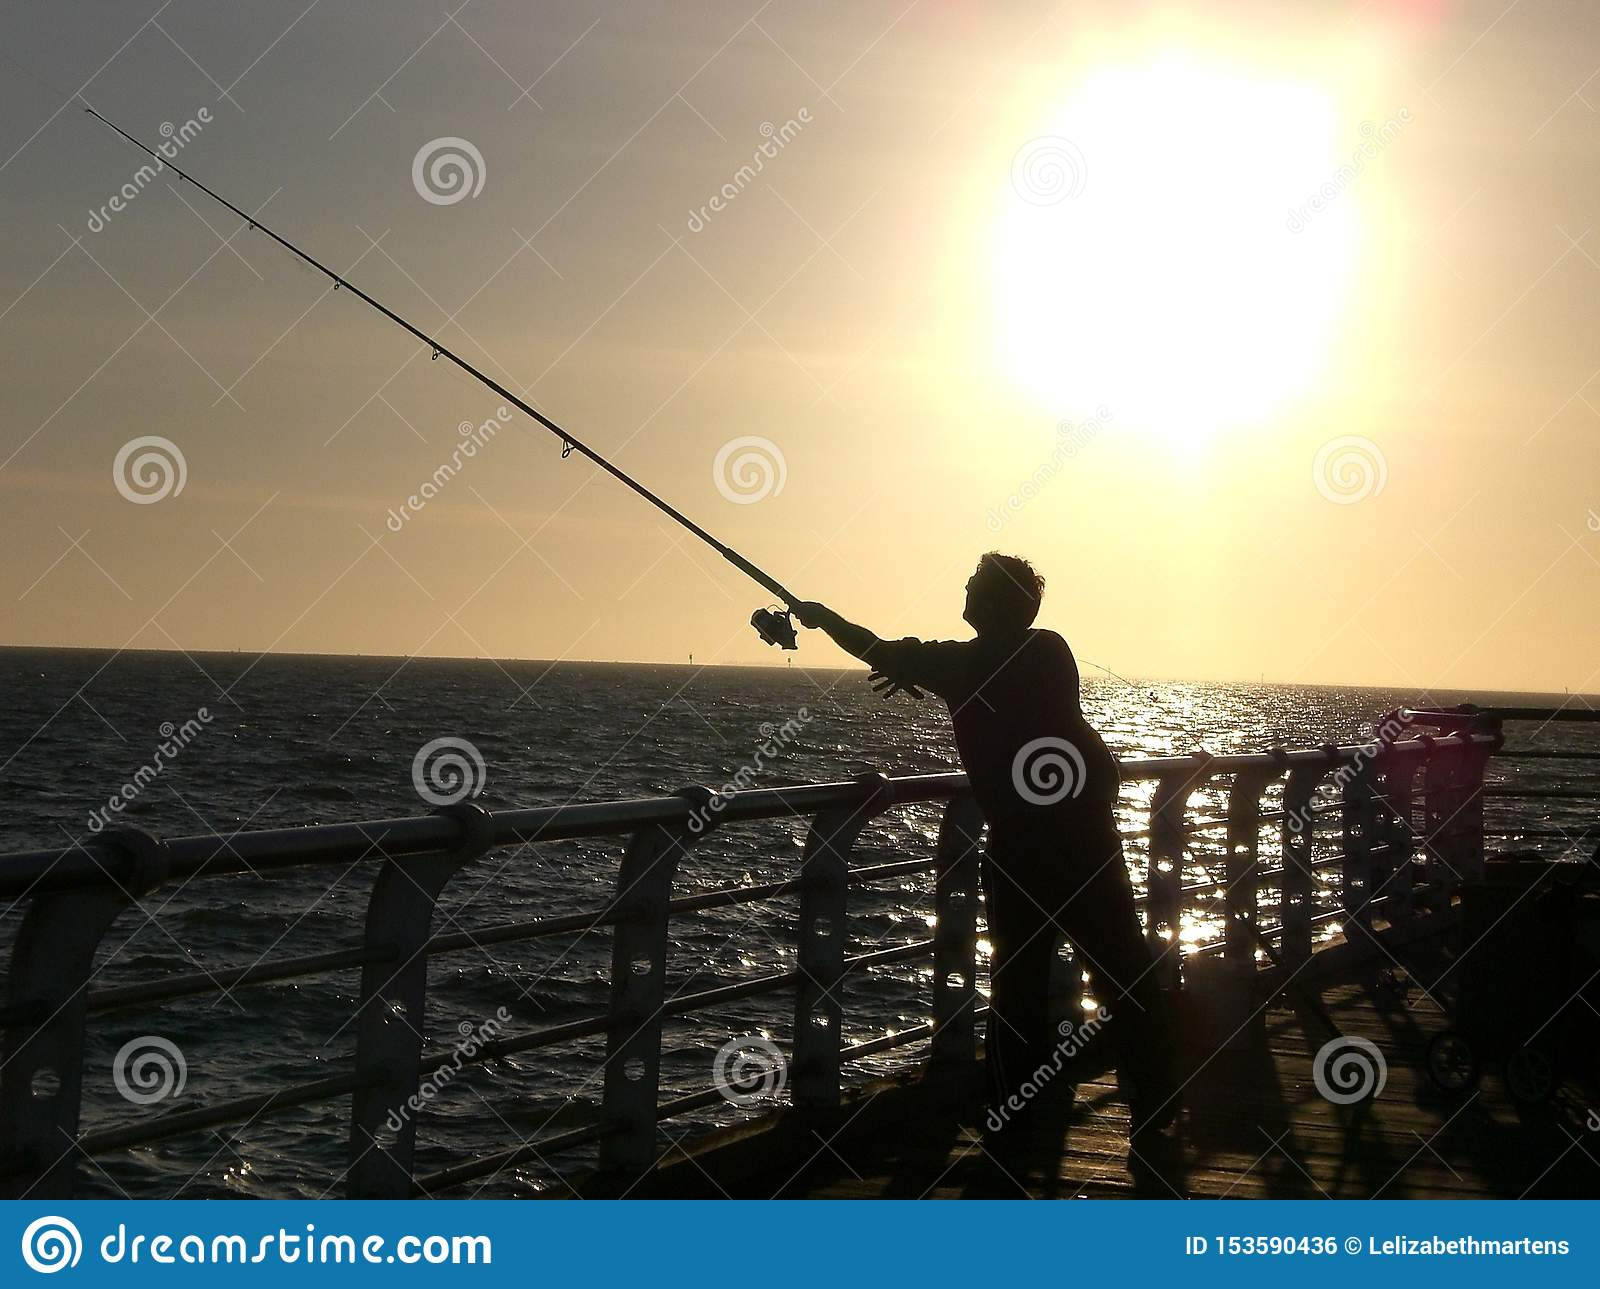 Sunset Fishing at the Pier